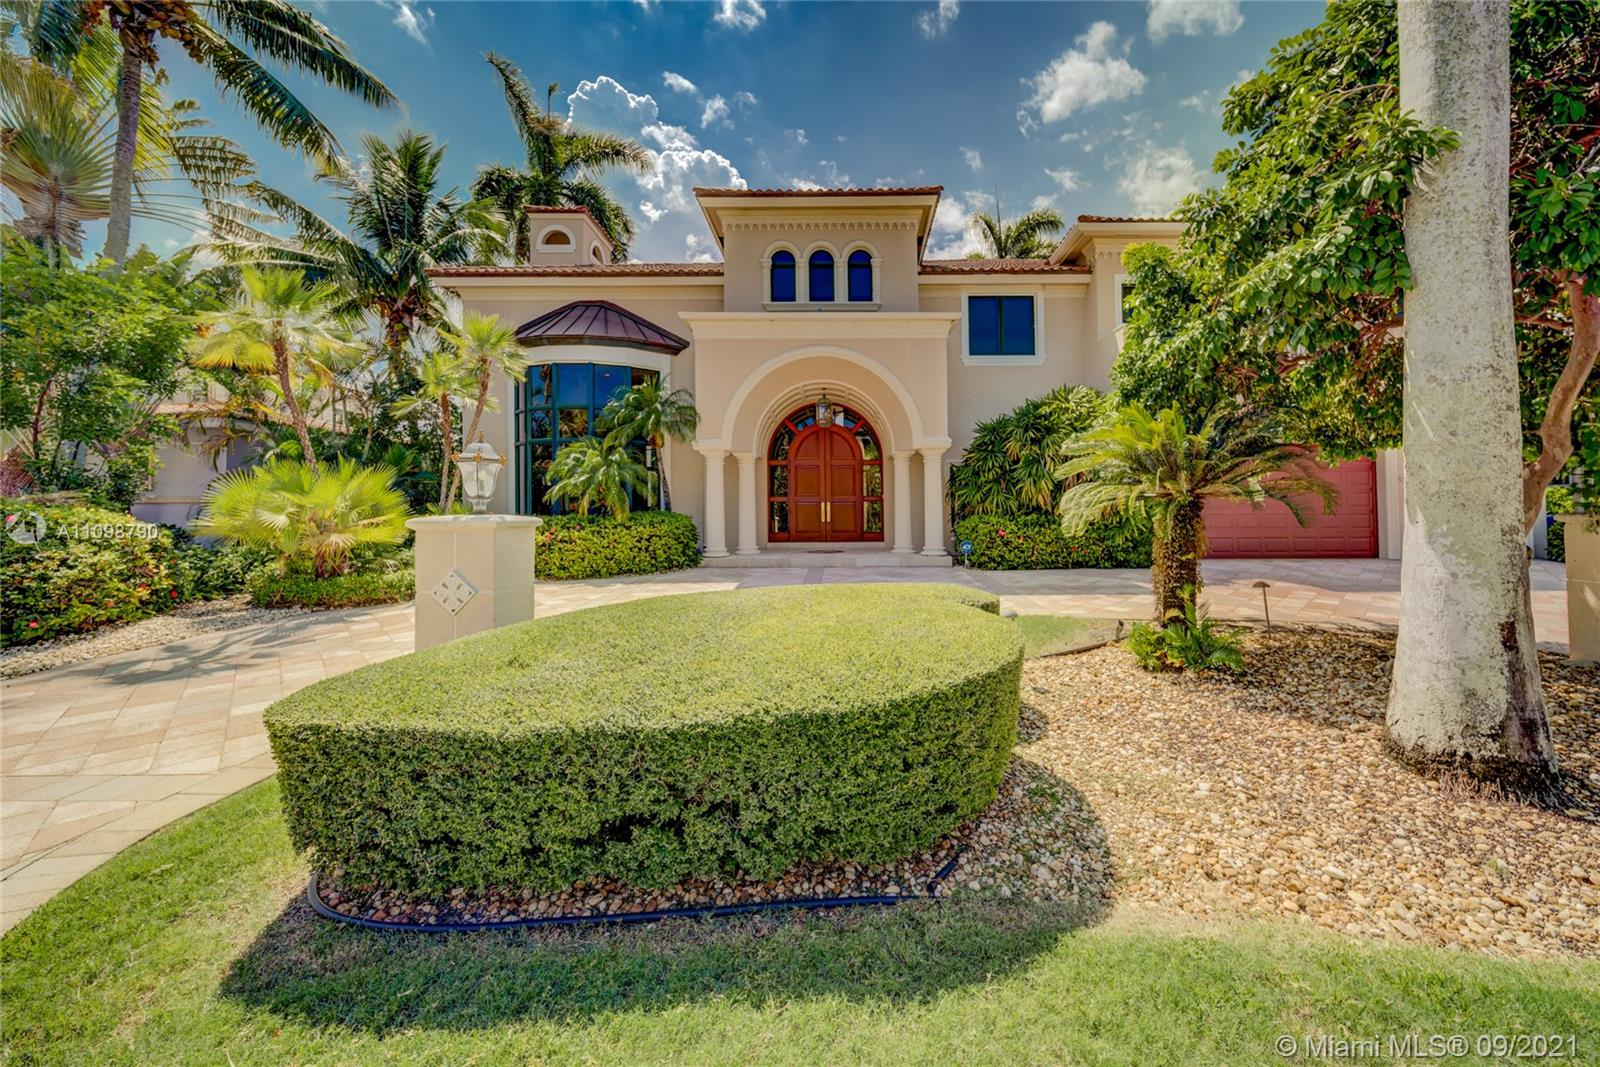 511 San Marco Dr Luxury Real Estate